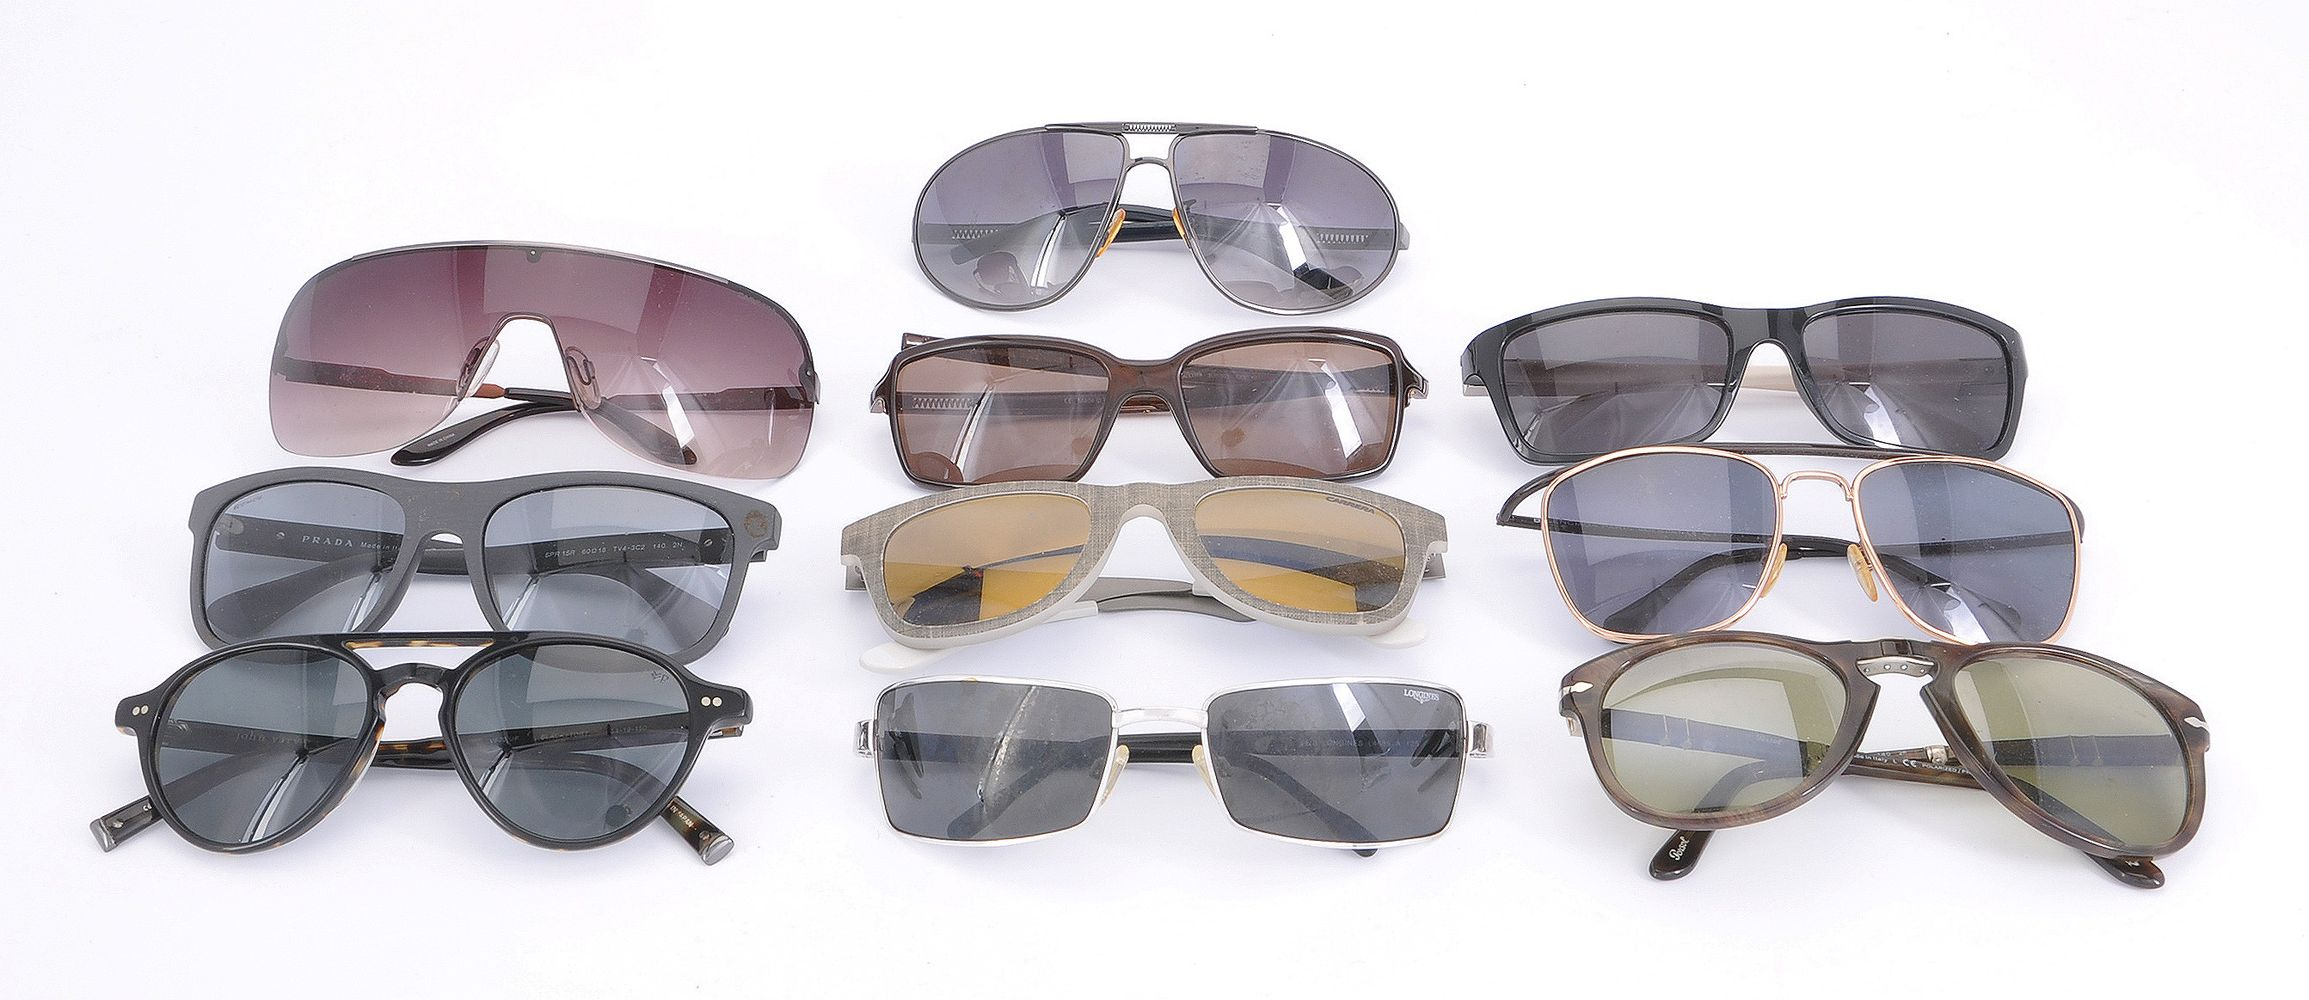 Lot 1087 - A collection of sunglasses from fashion brands